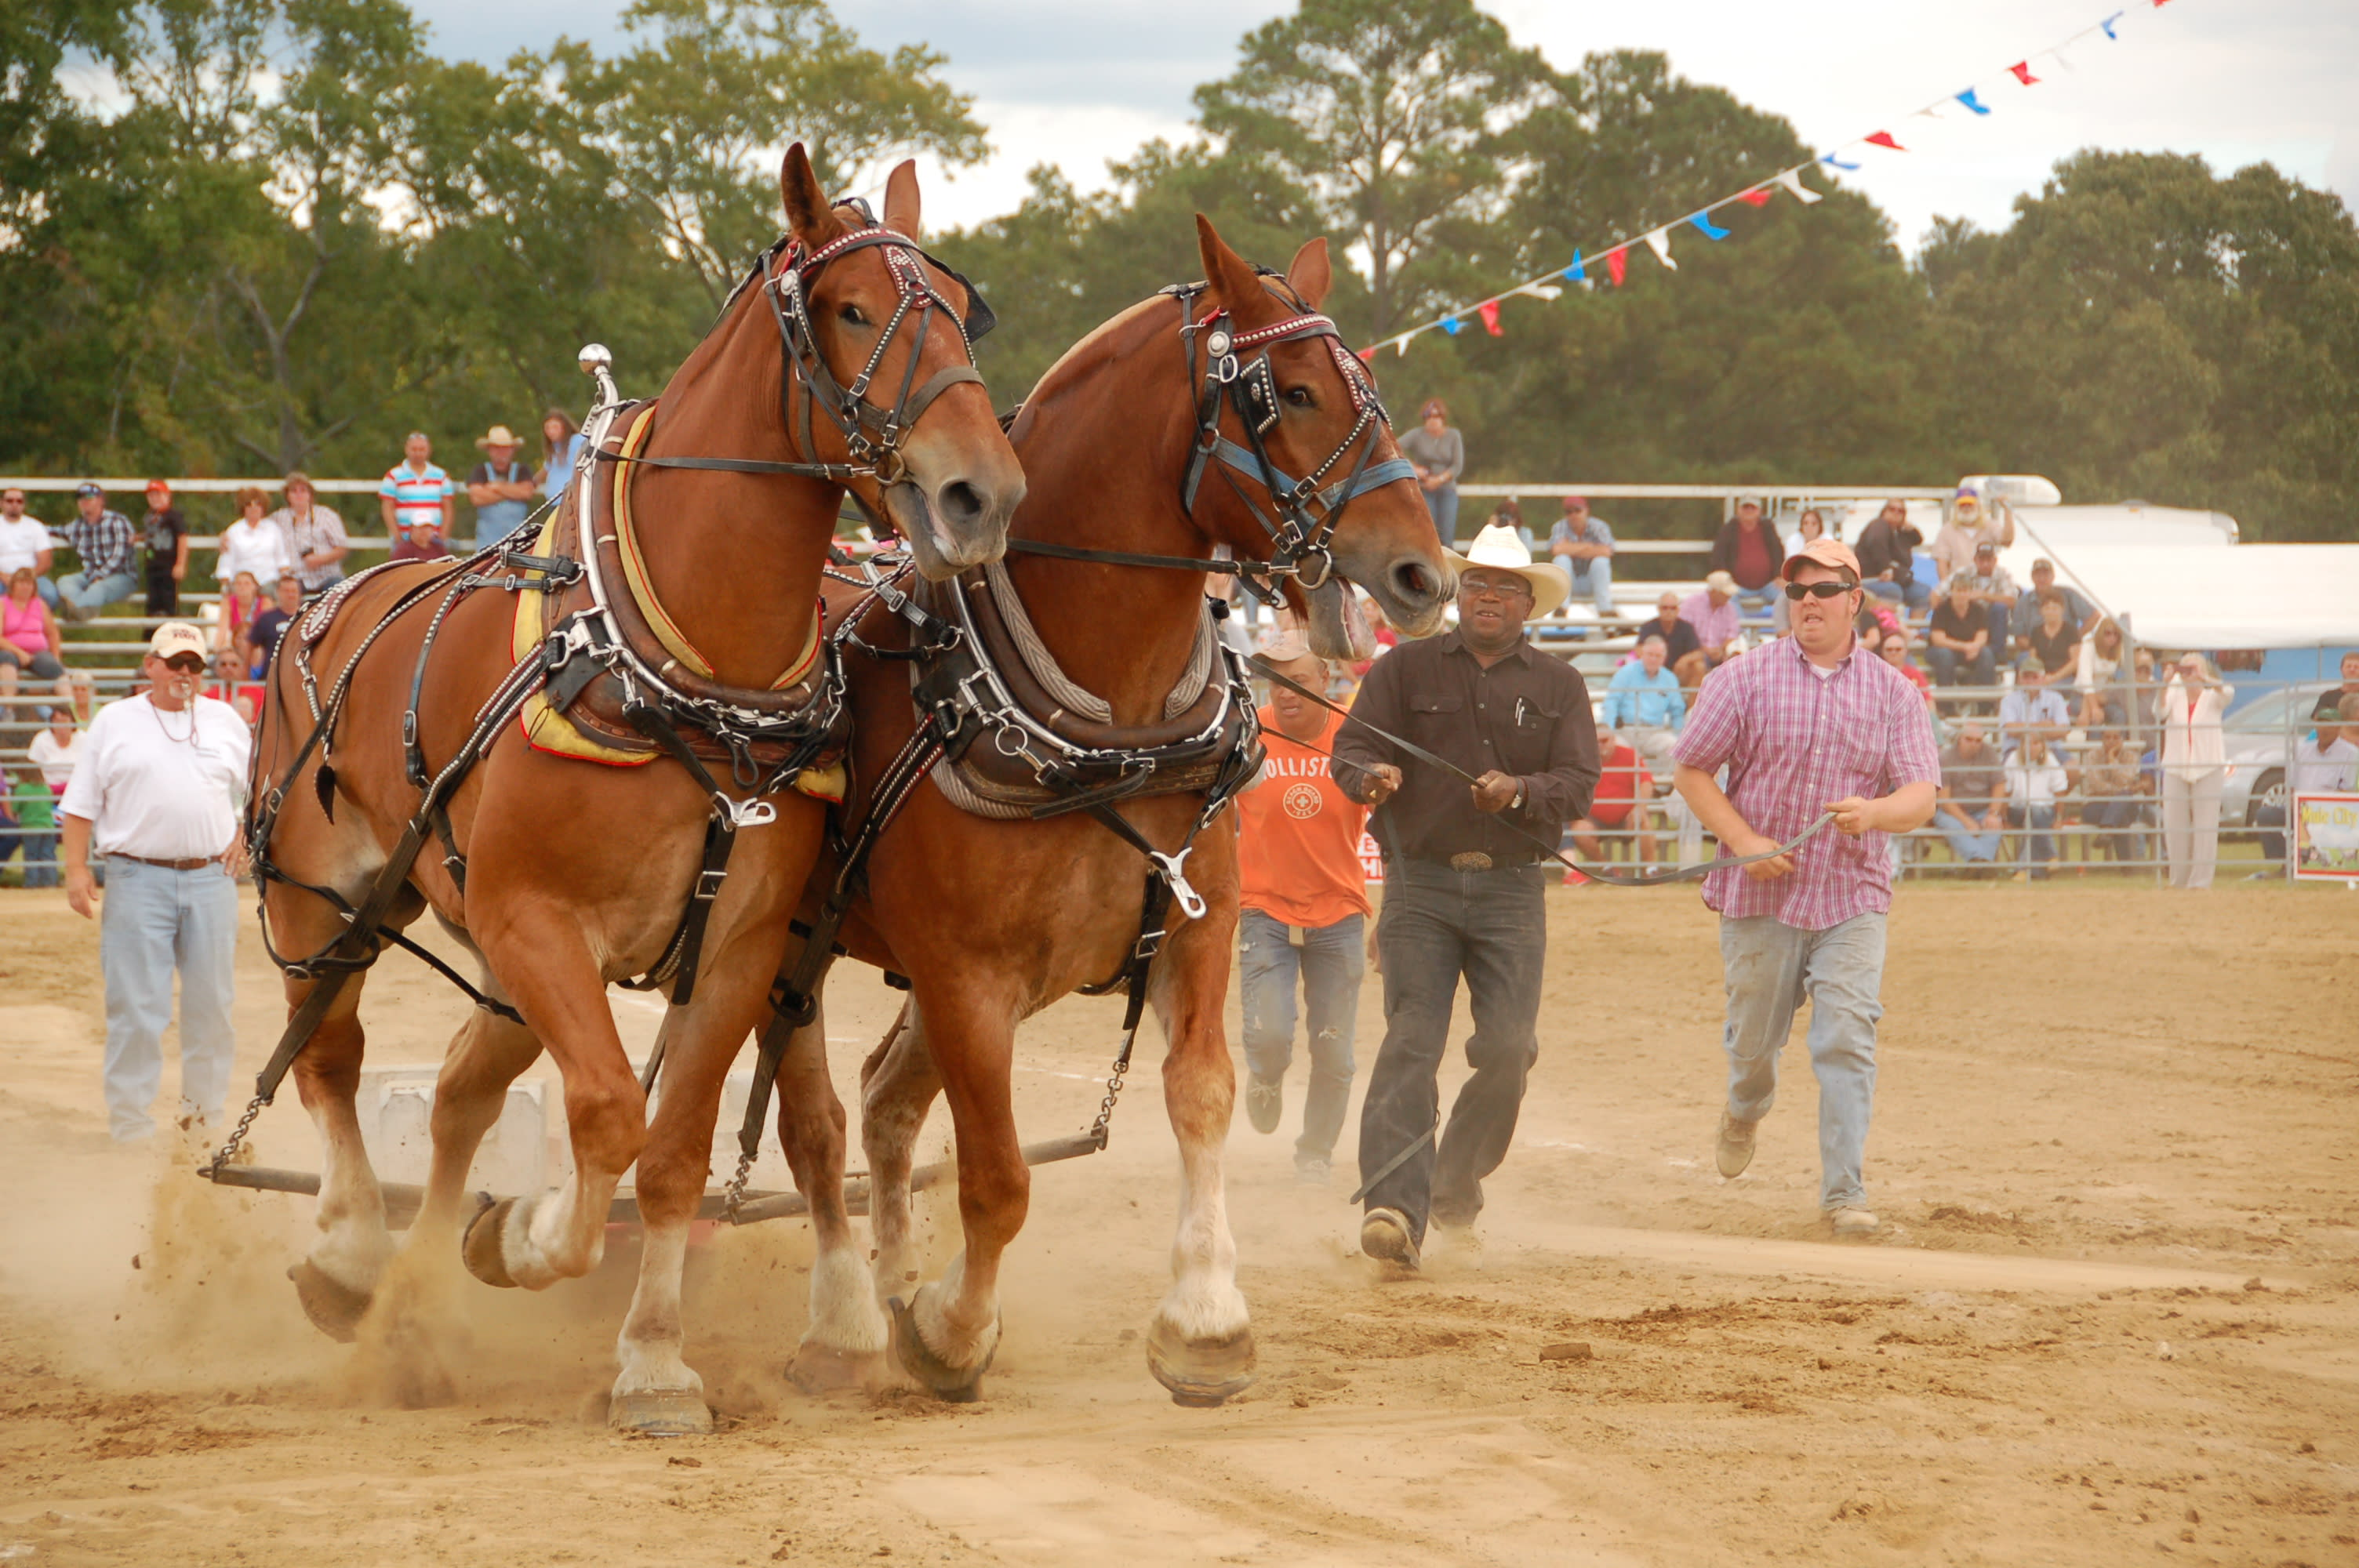 Mule Contests During Festival